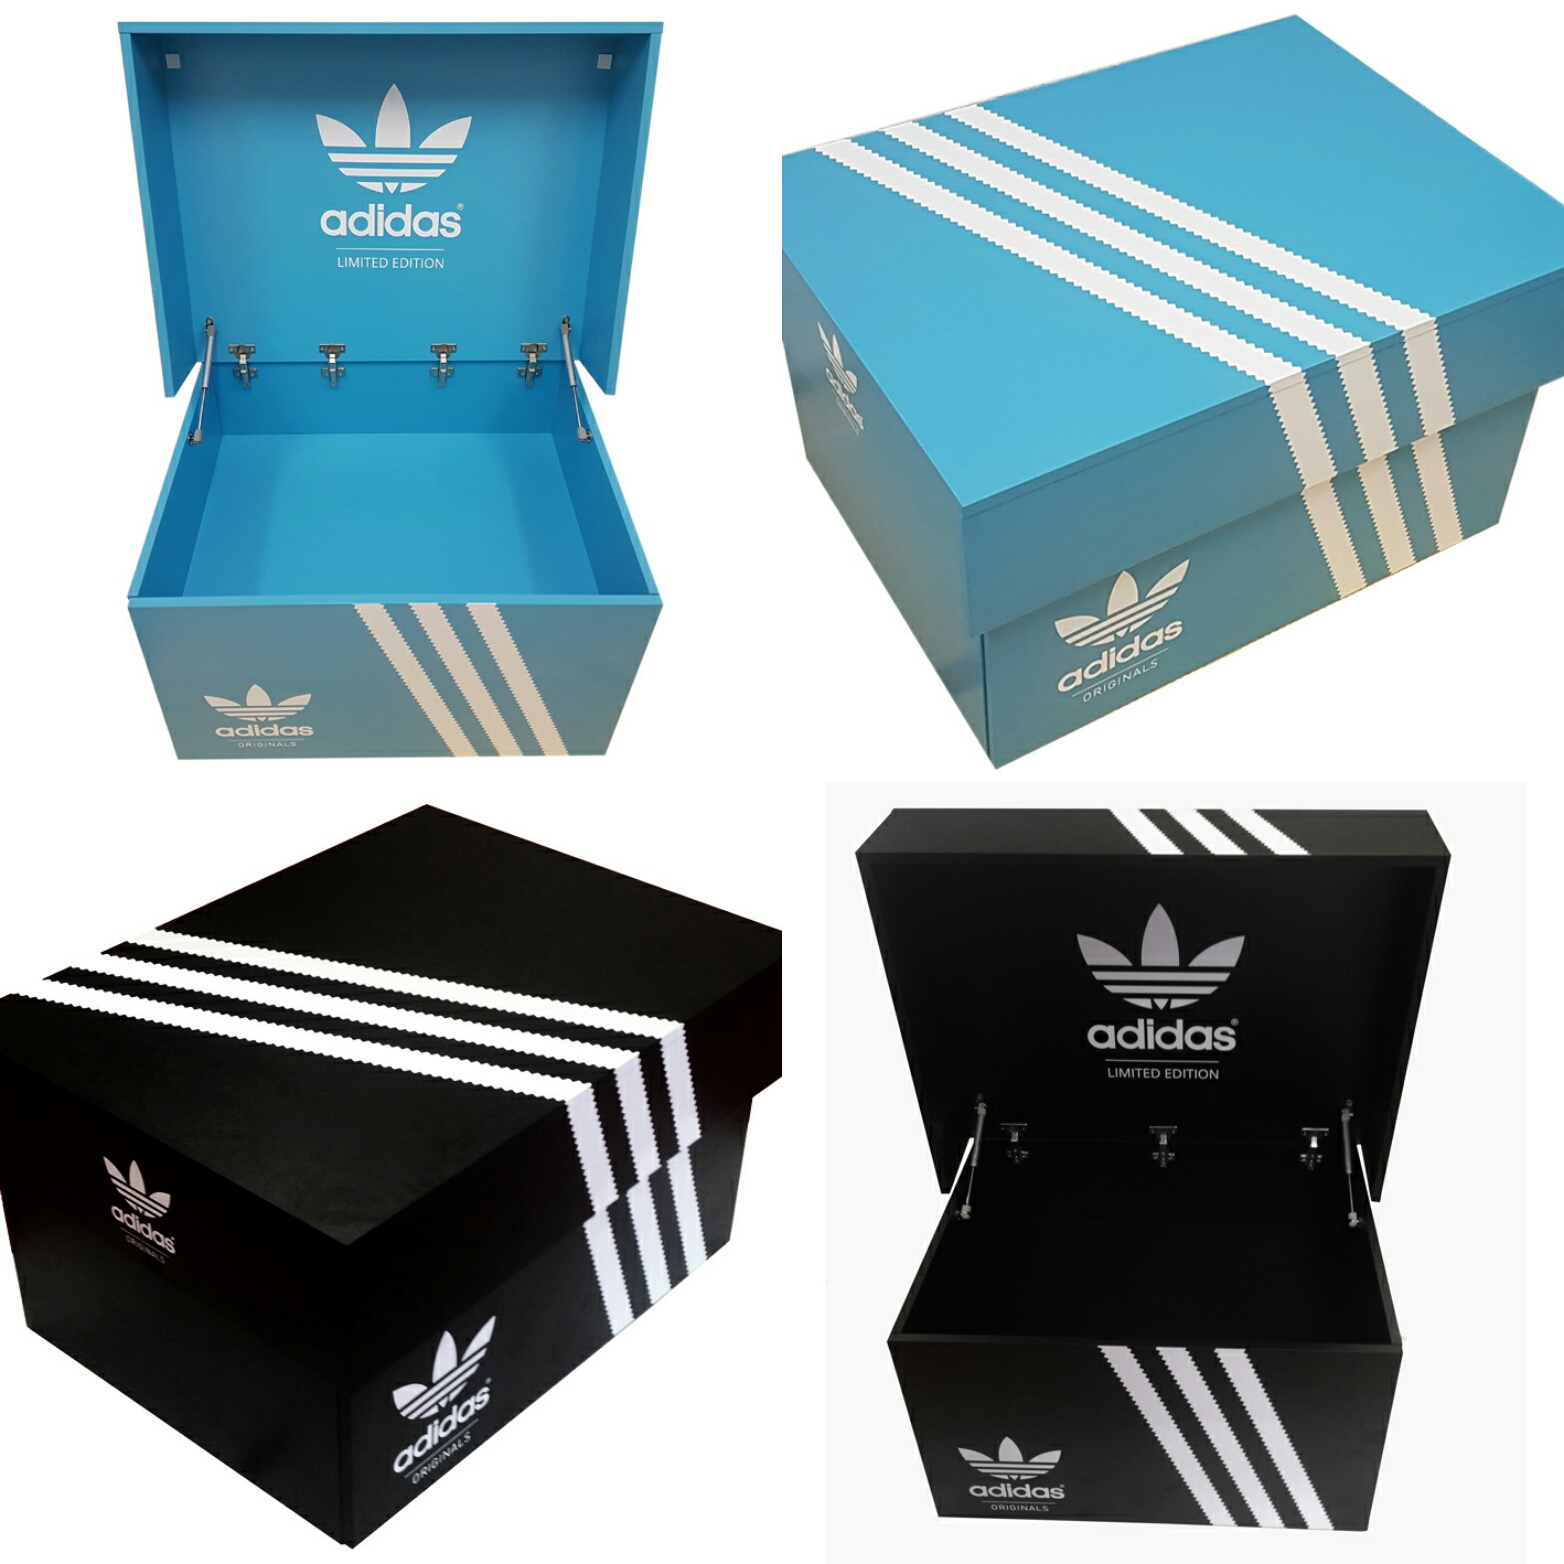 adidas sneakers box disi box. Black Bedroom Furniture Sets. Home Design Ideas